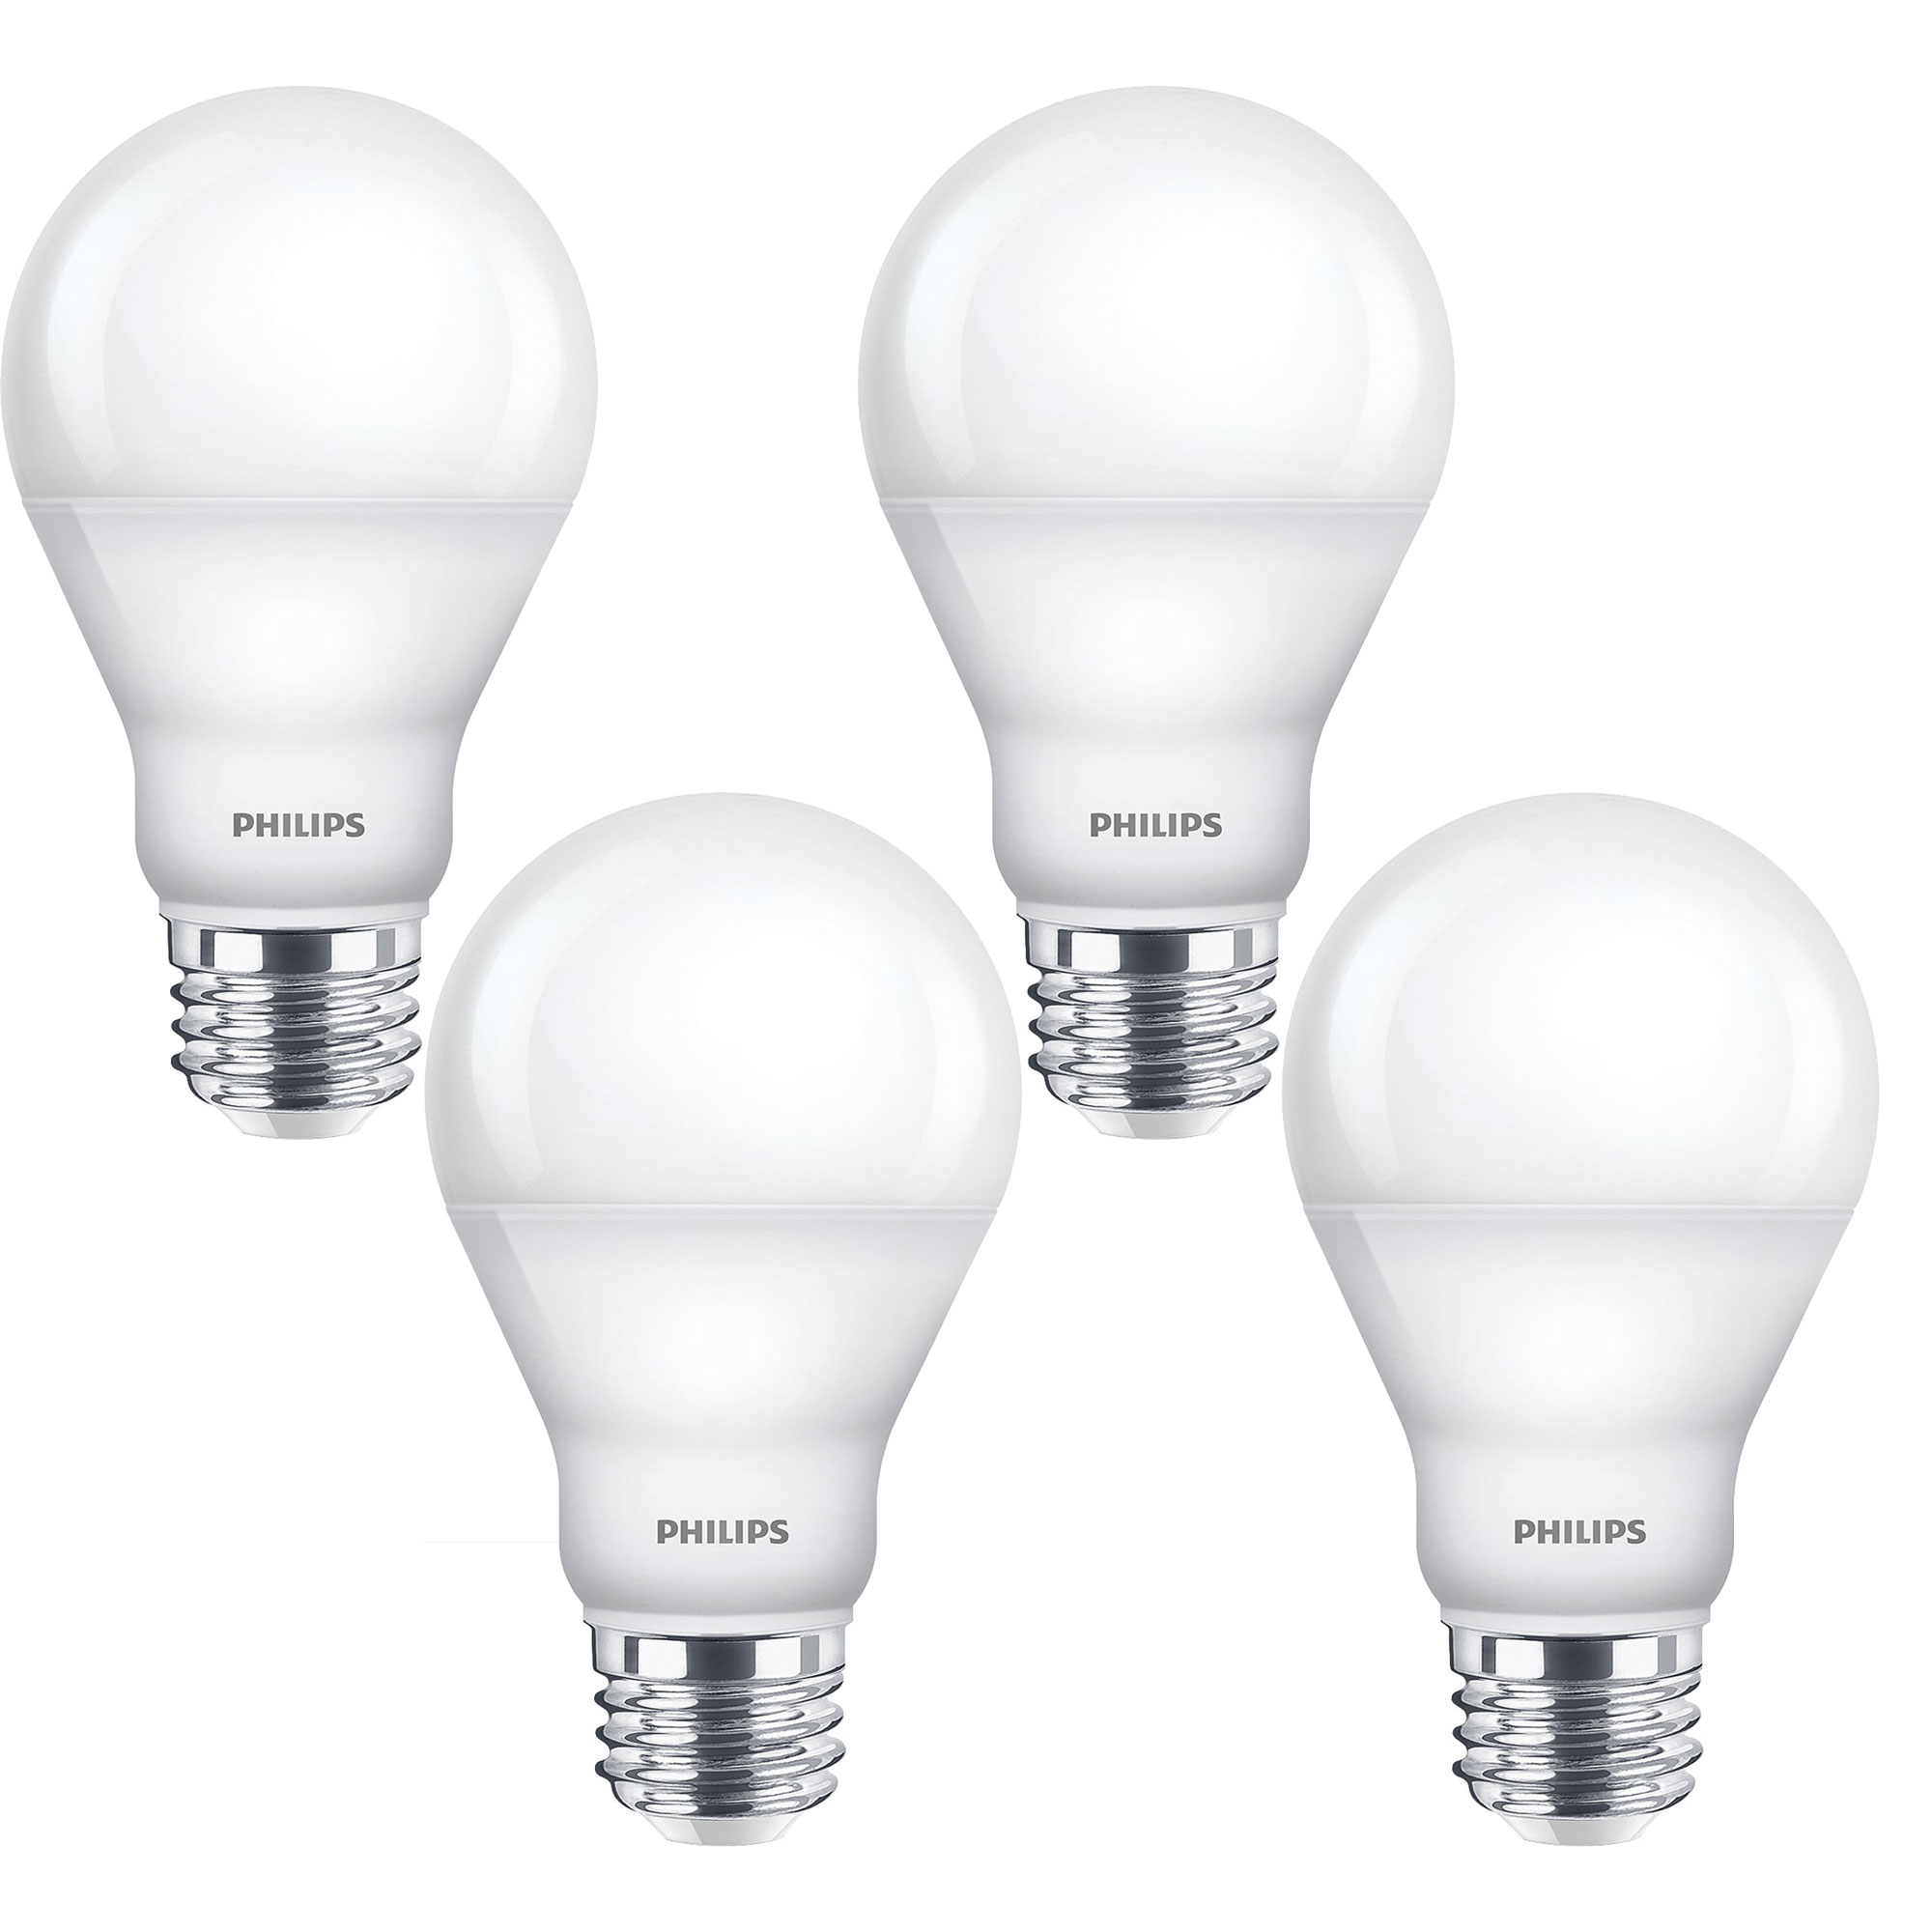 led white philips soft bulb dimmable equivalent light lighting review integrating sphere products